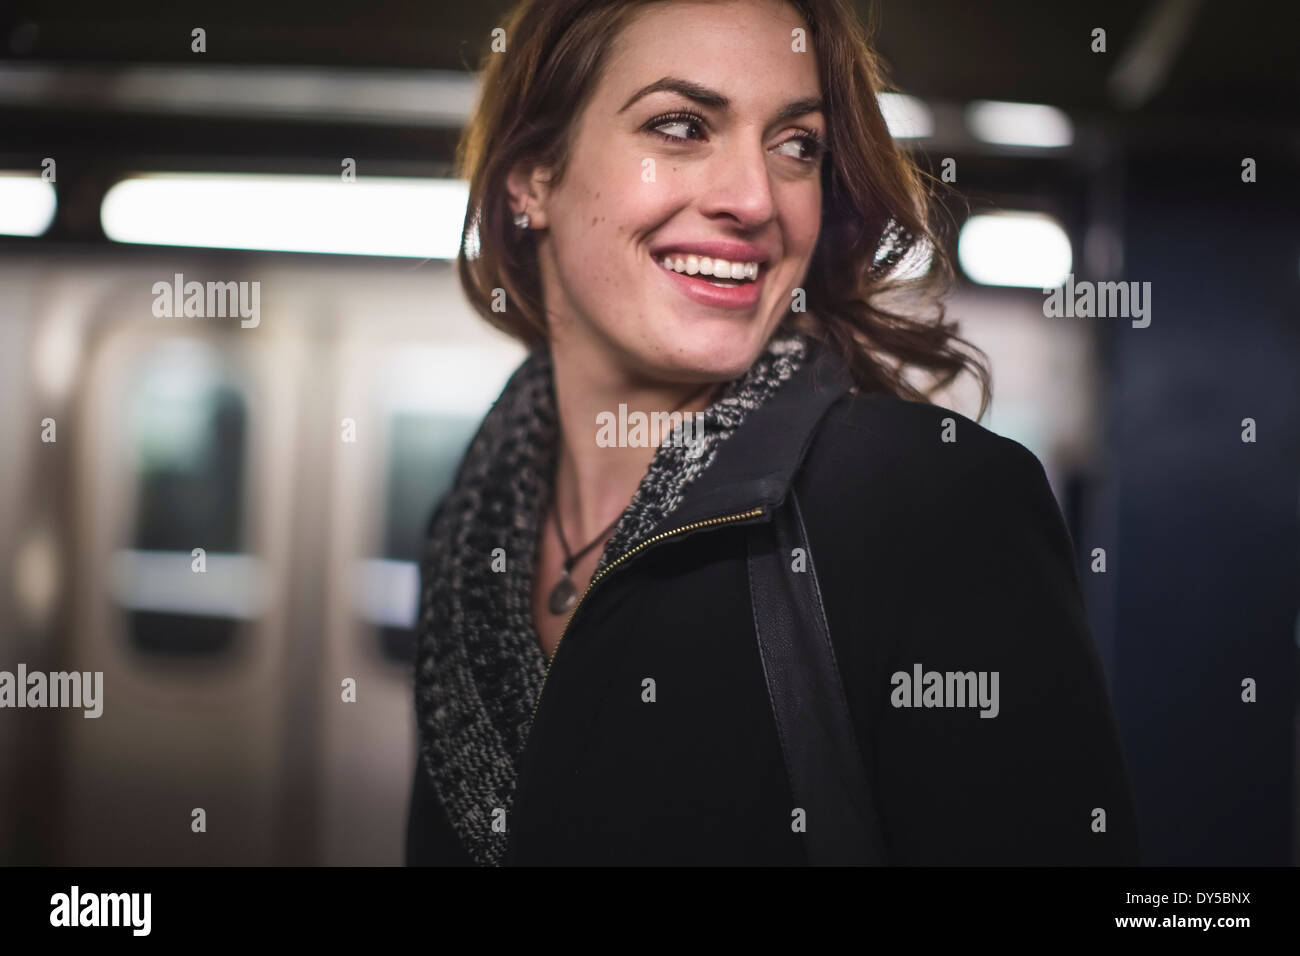 Young woman in subway station - Stock Image